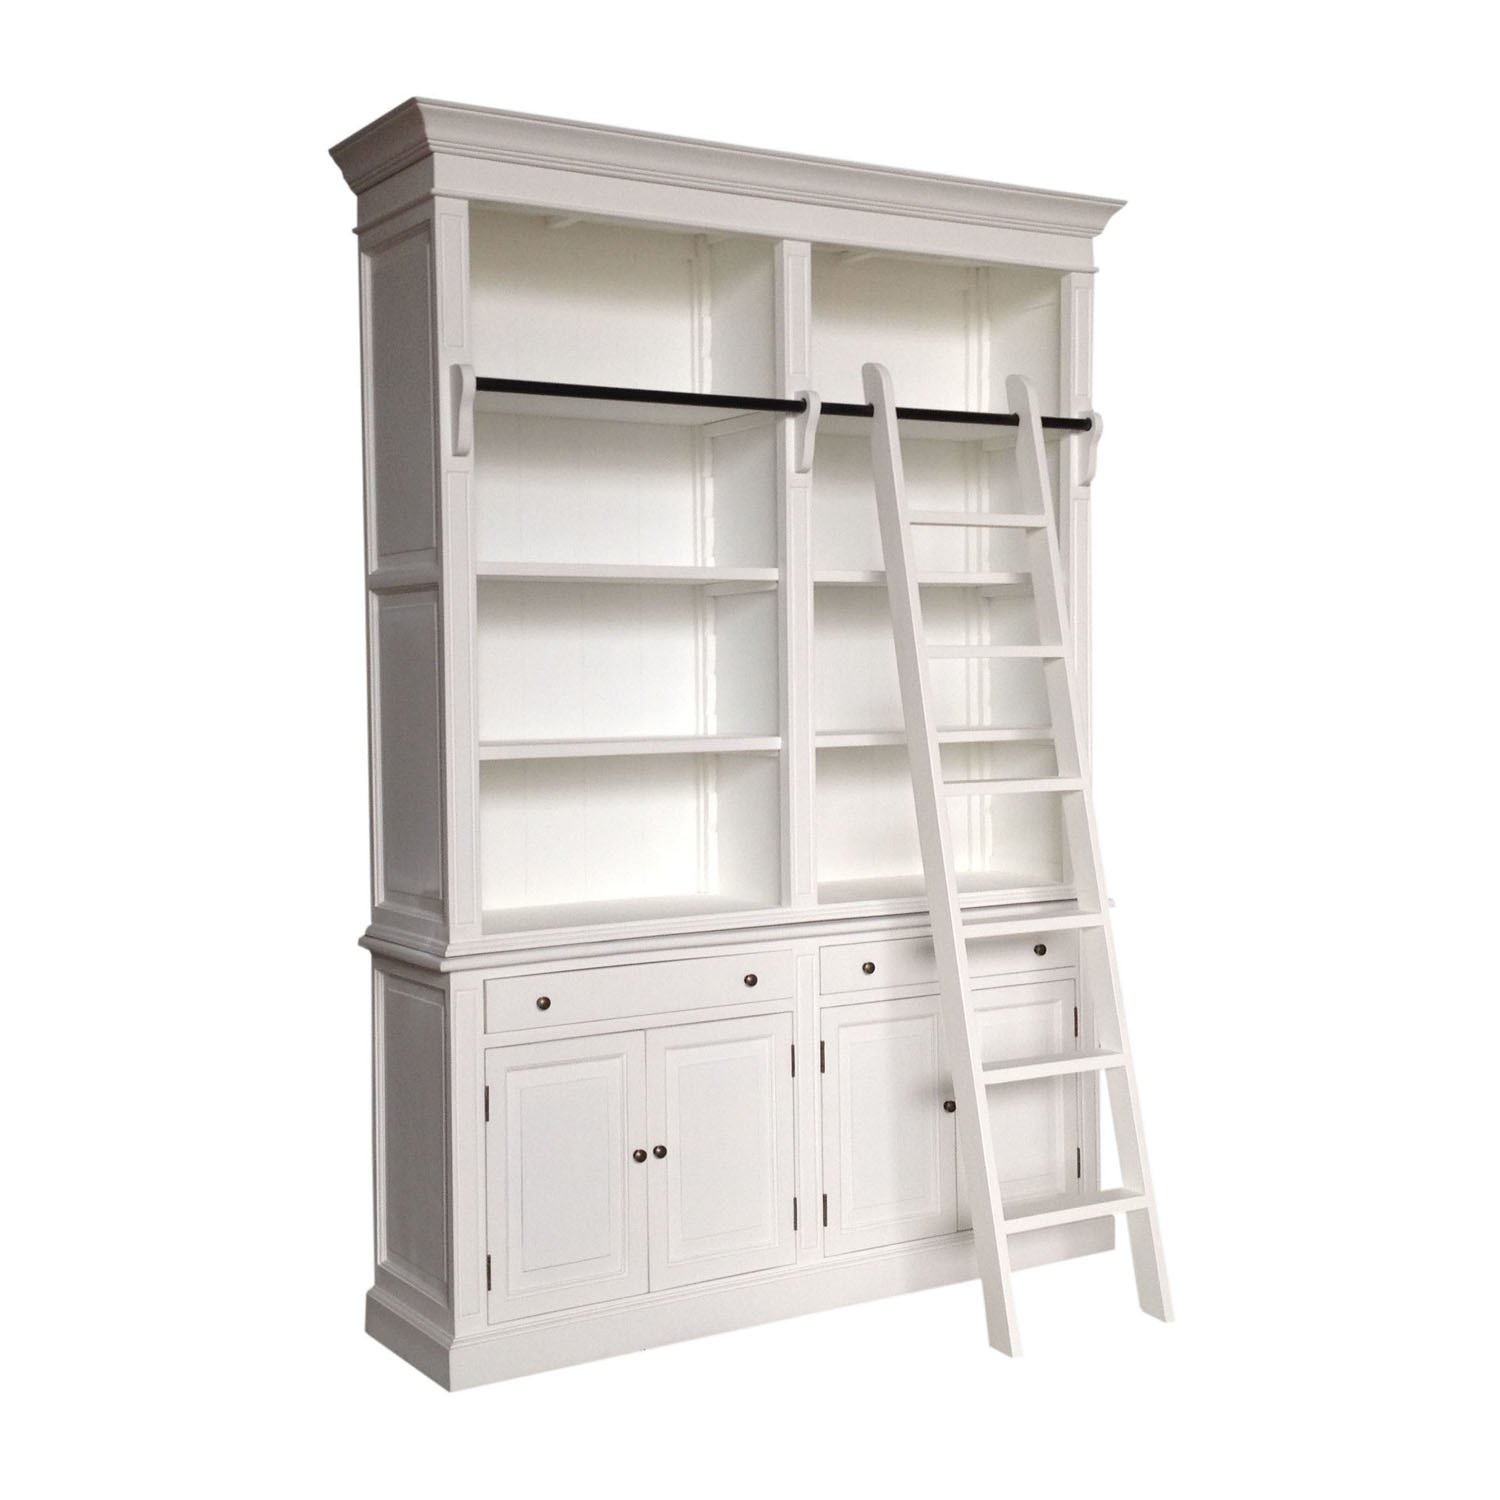 China Antique White Painted French Wooden Furniture Bookcase